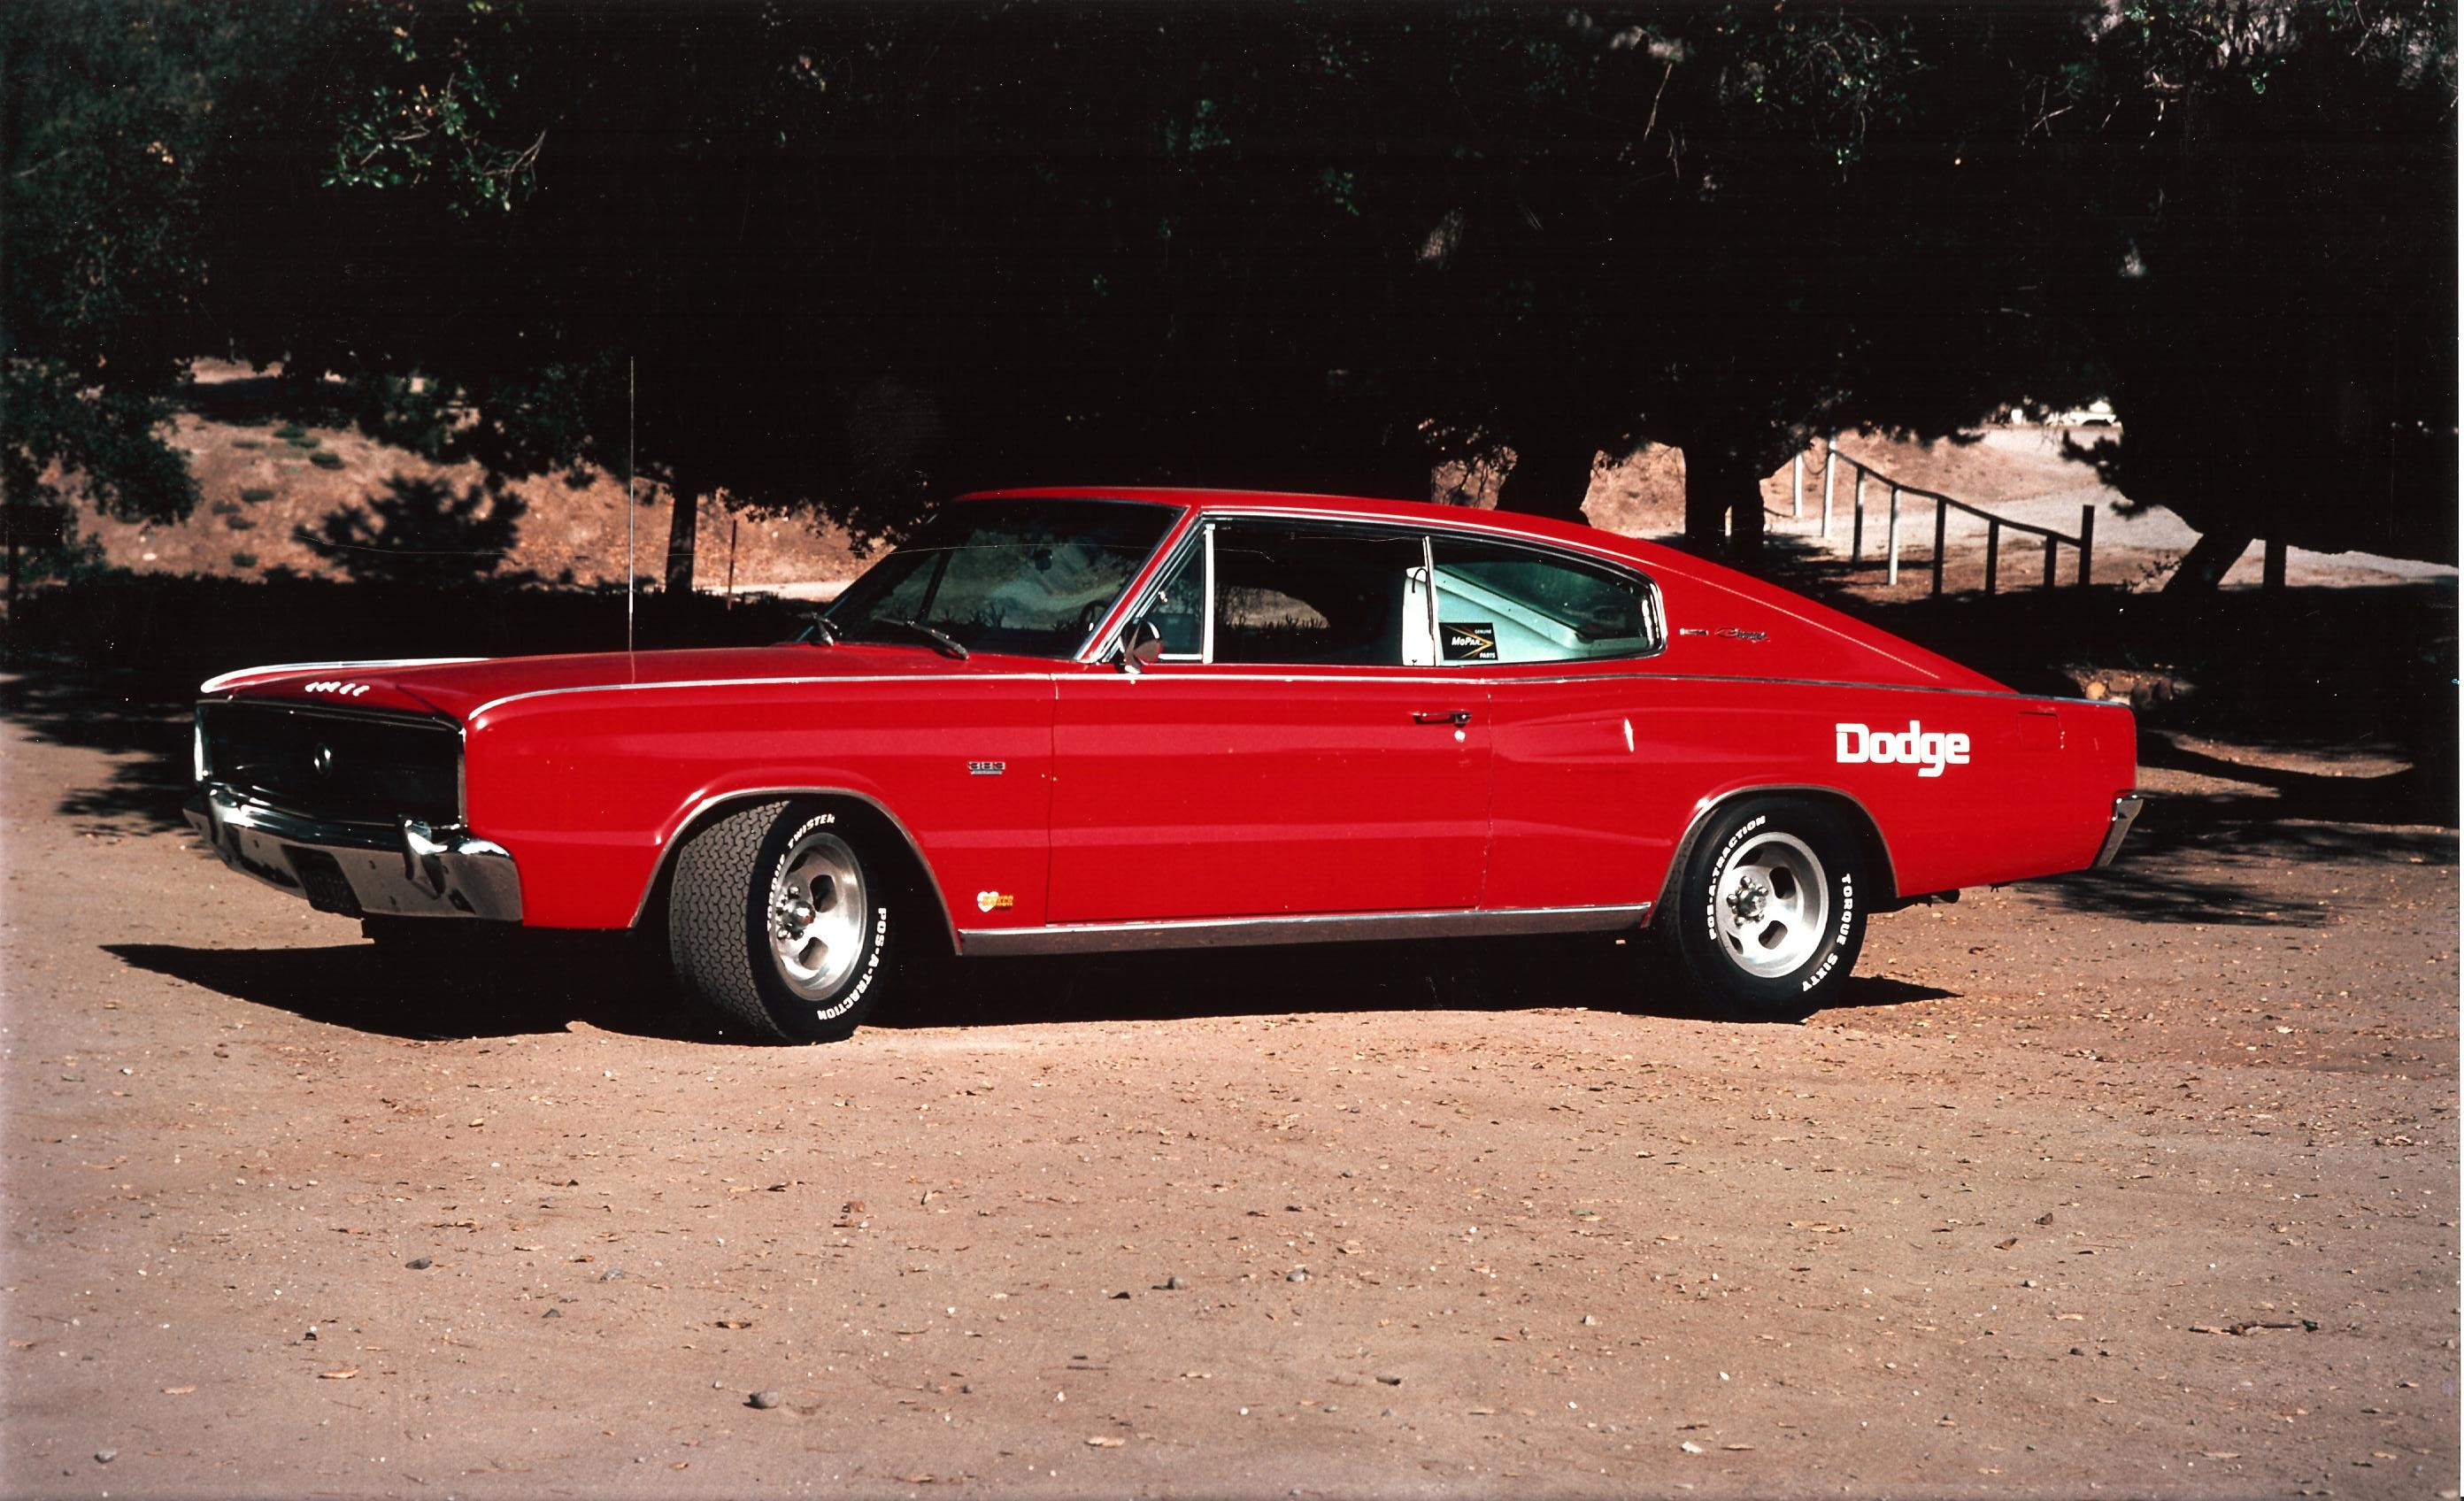 1966 Dodge Charger 2-door fastback